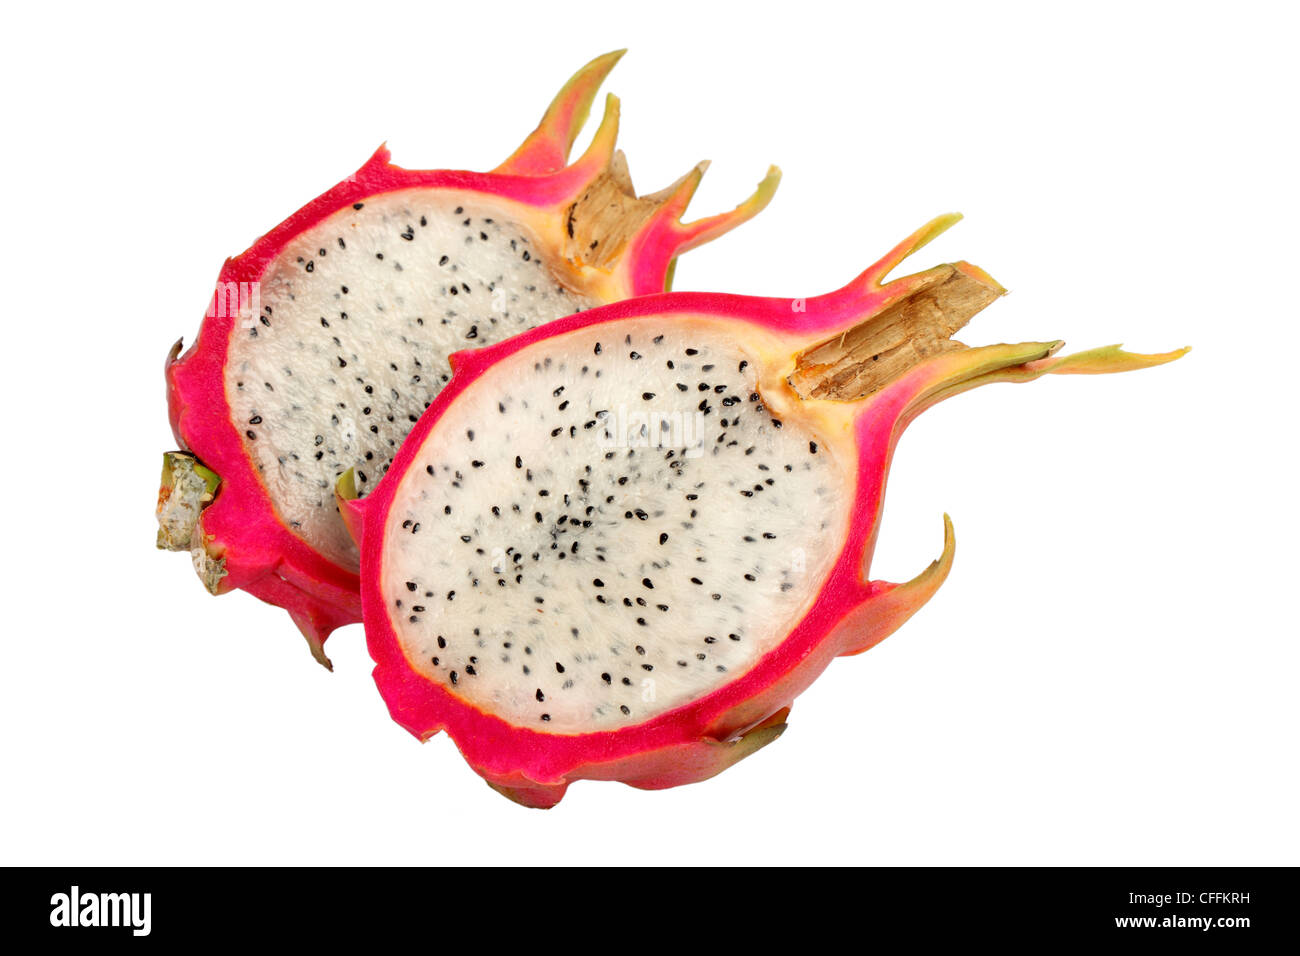 Sliced Dragonfruit cut out on white background - Stock Image